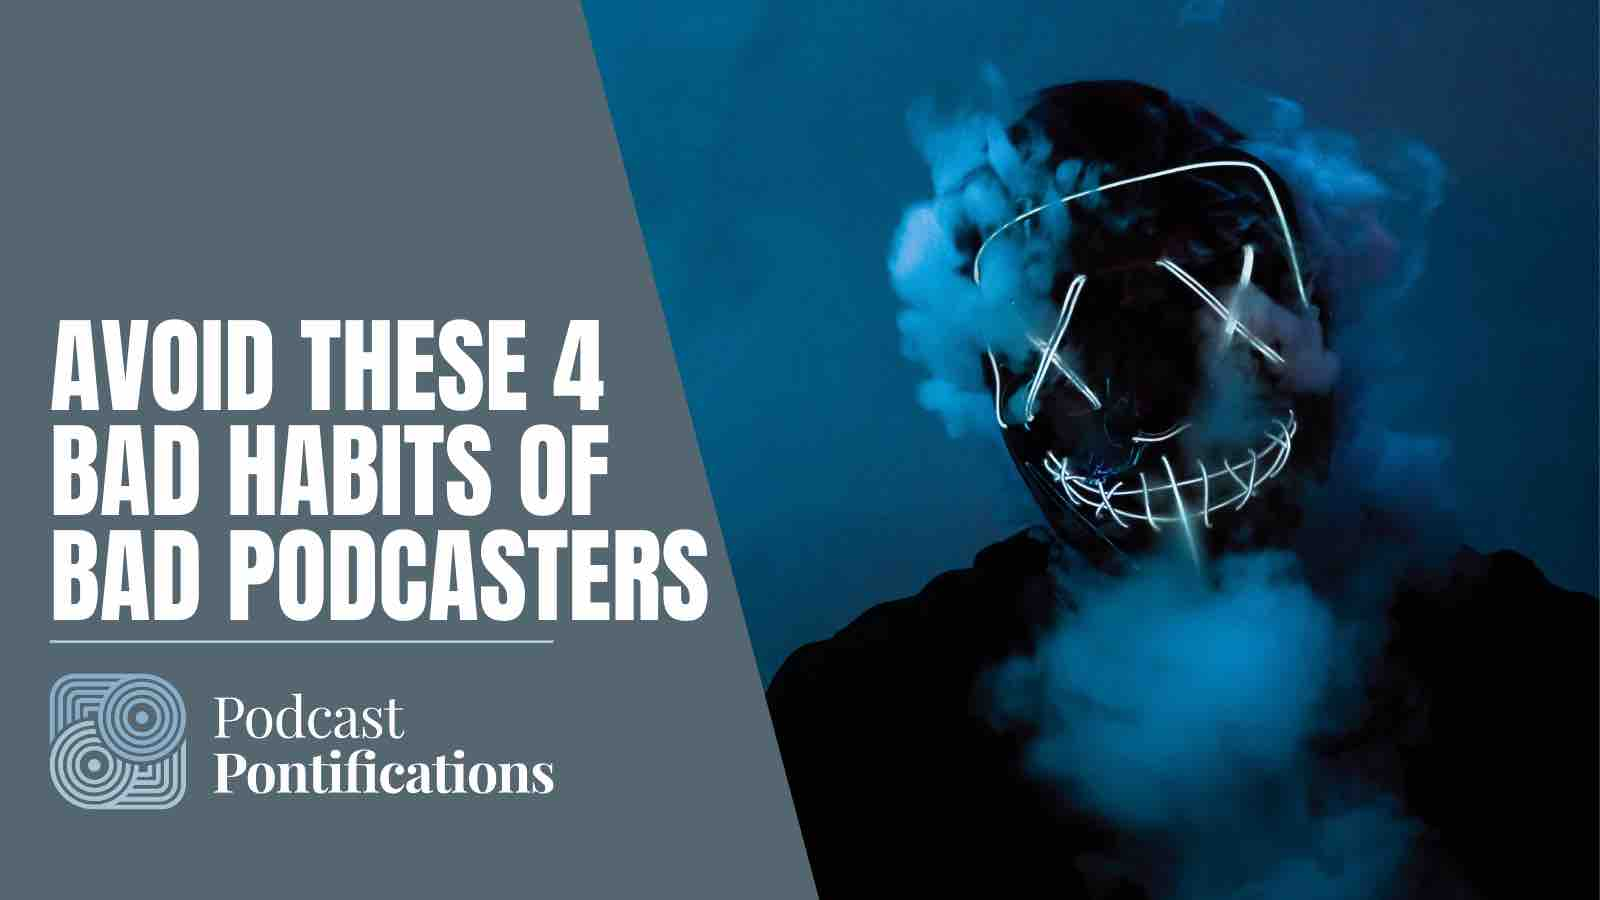 Avoid These 4 Bad Habits Of Bad Podcasters